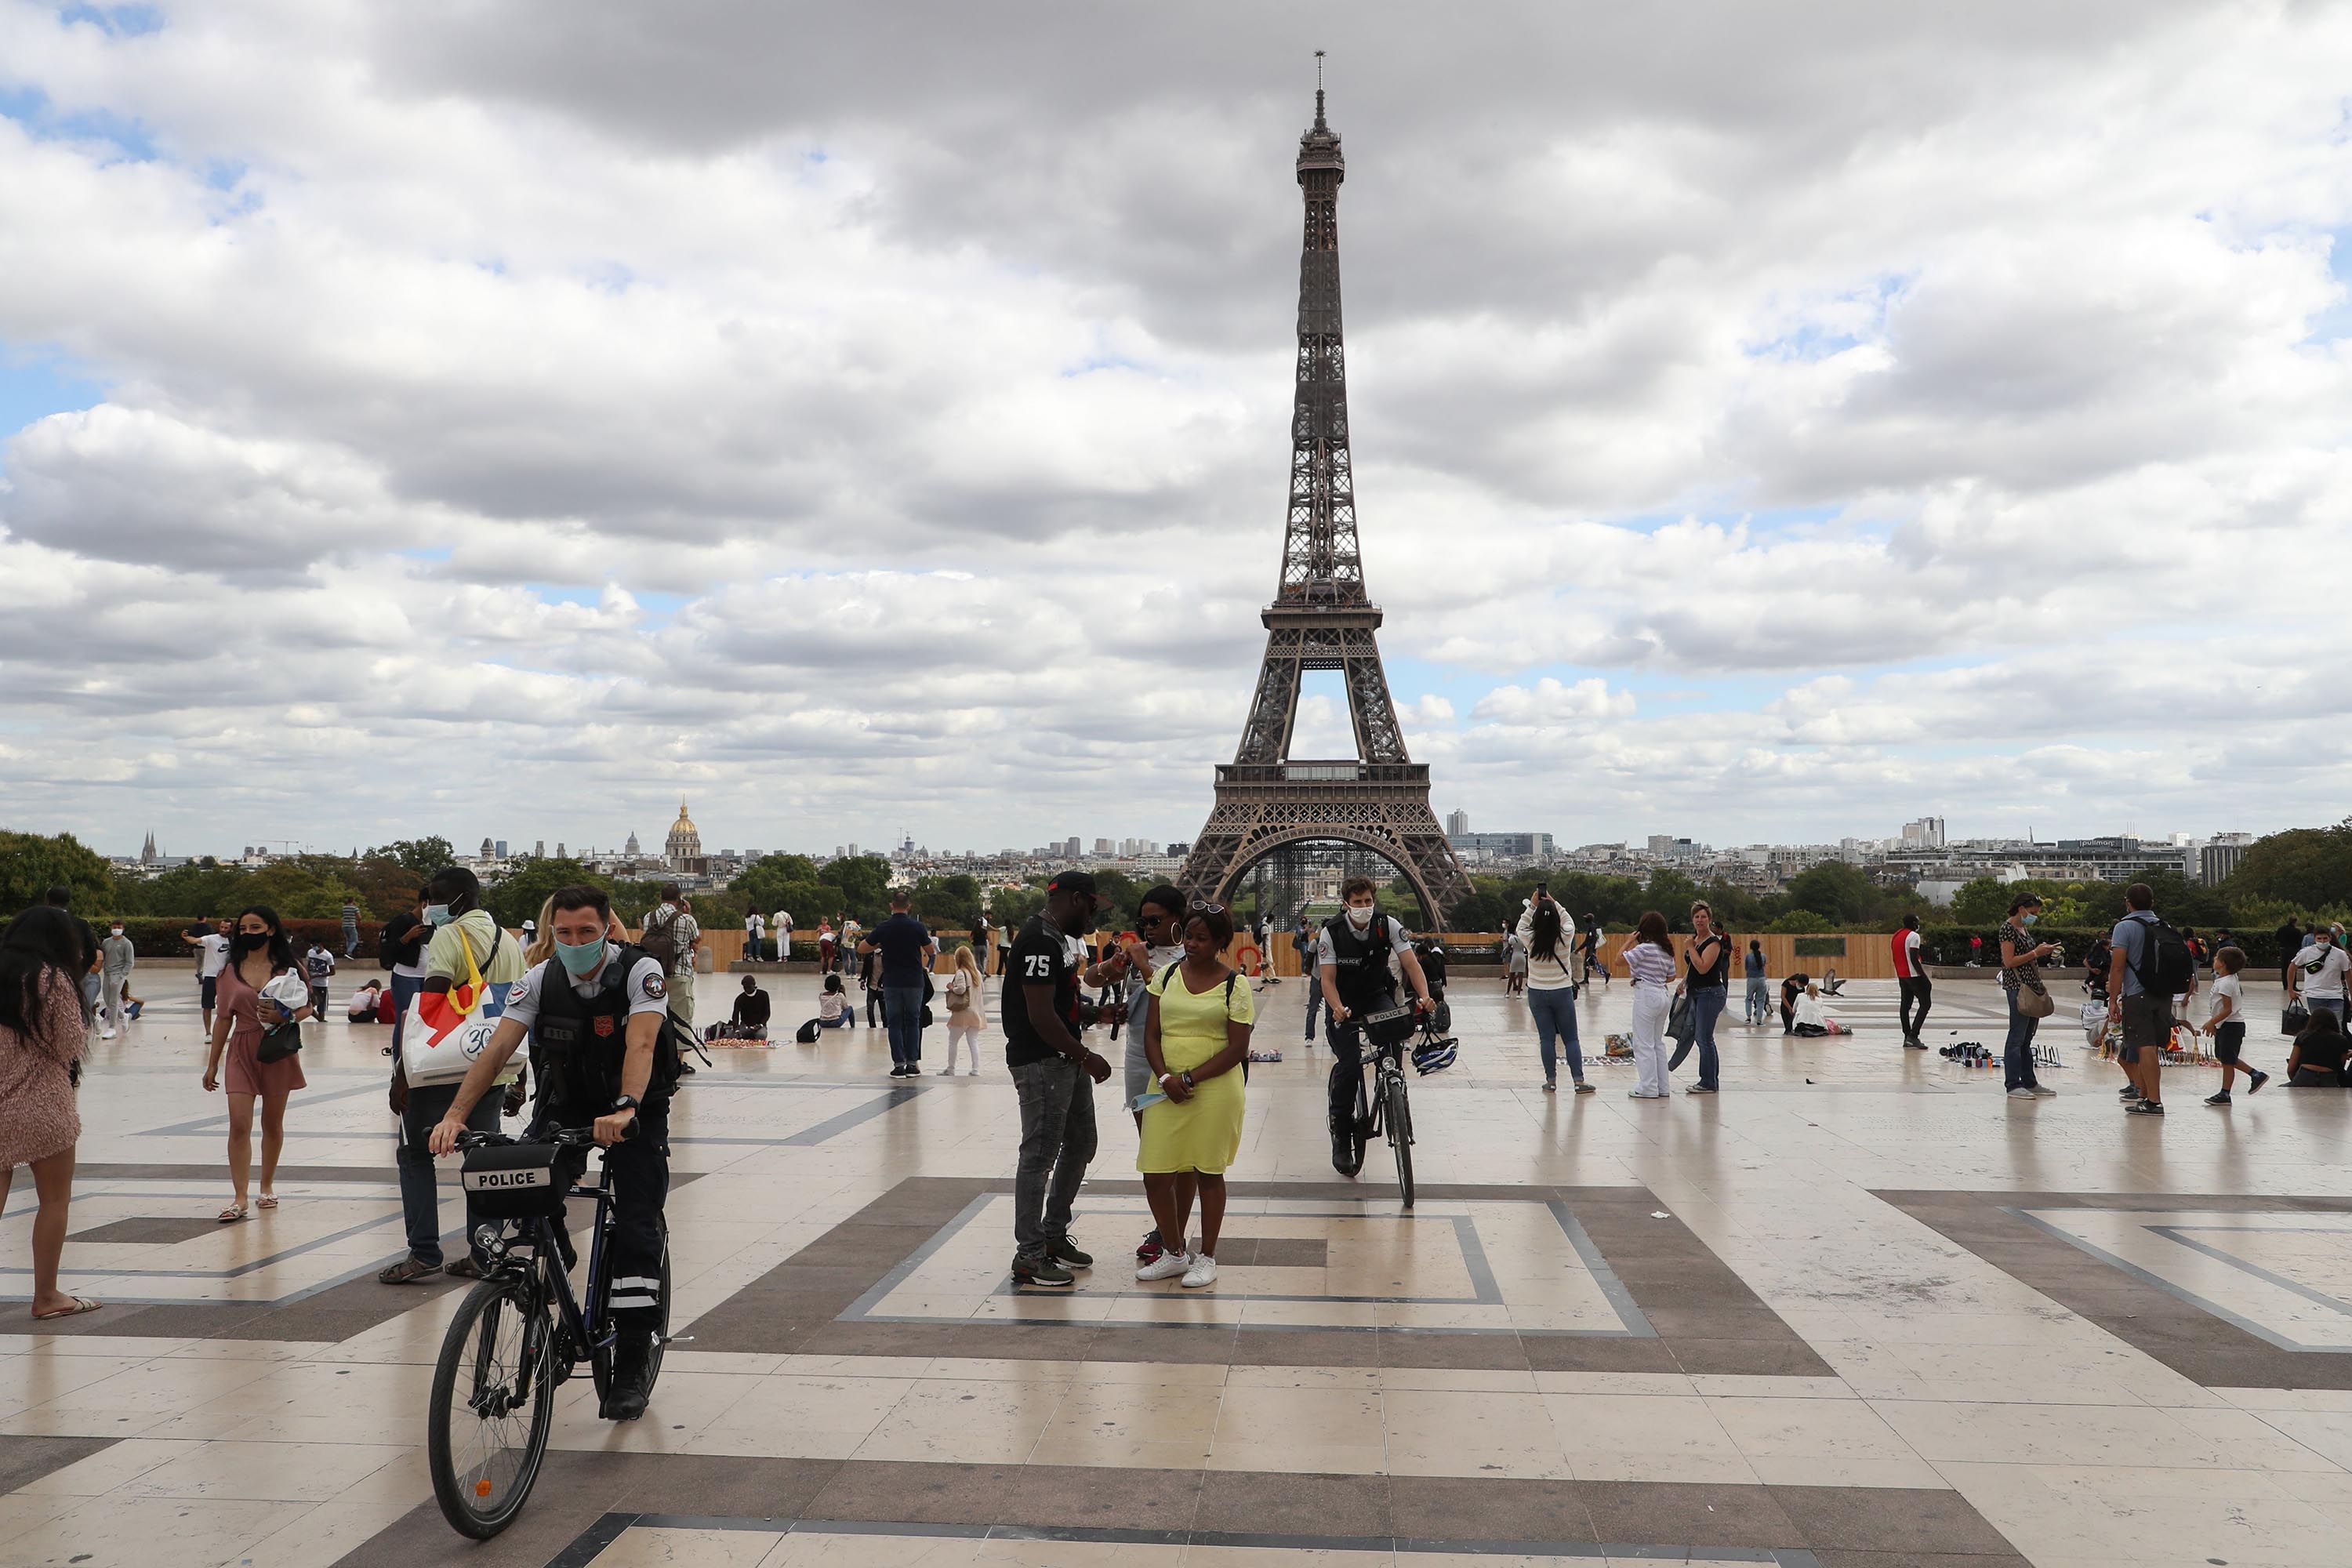 Bicycle police patrol on the Trocadero esplanade, near the Eiffel Tower in Paris, on August 24.